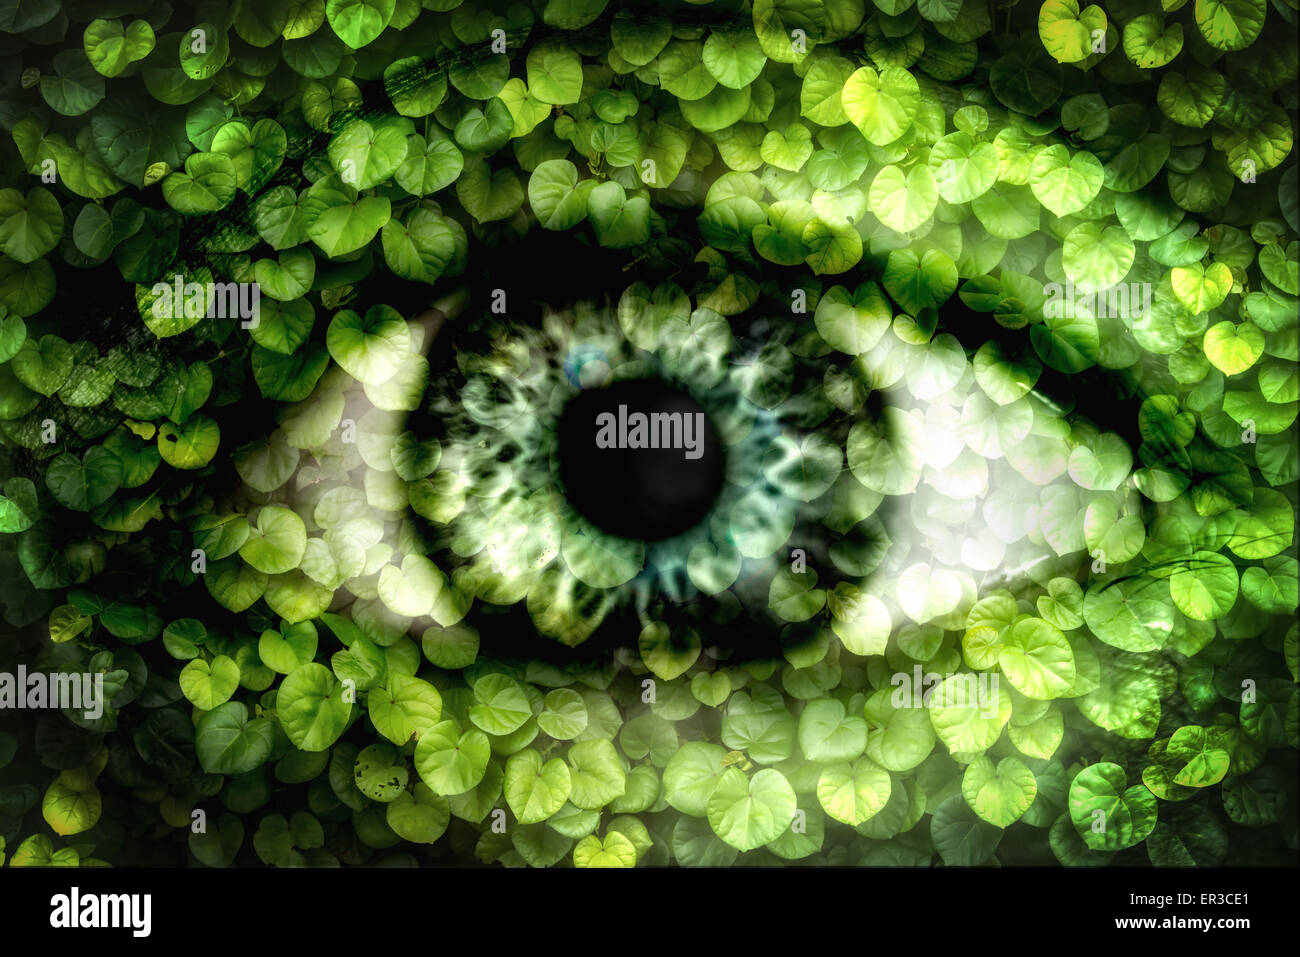 Double exposure of a human eye and wall of ivy - Stock Image